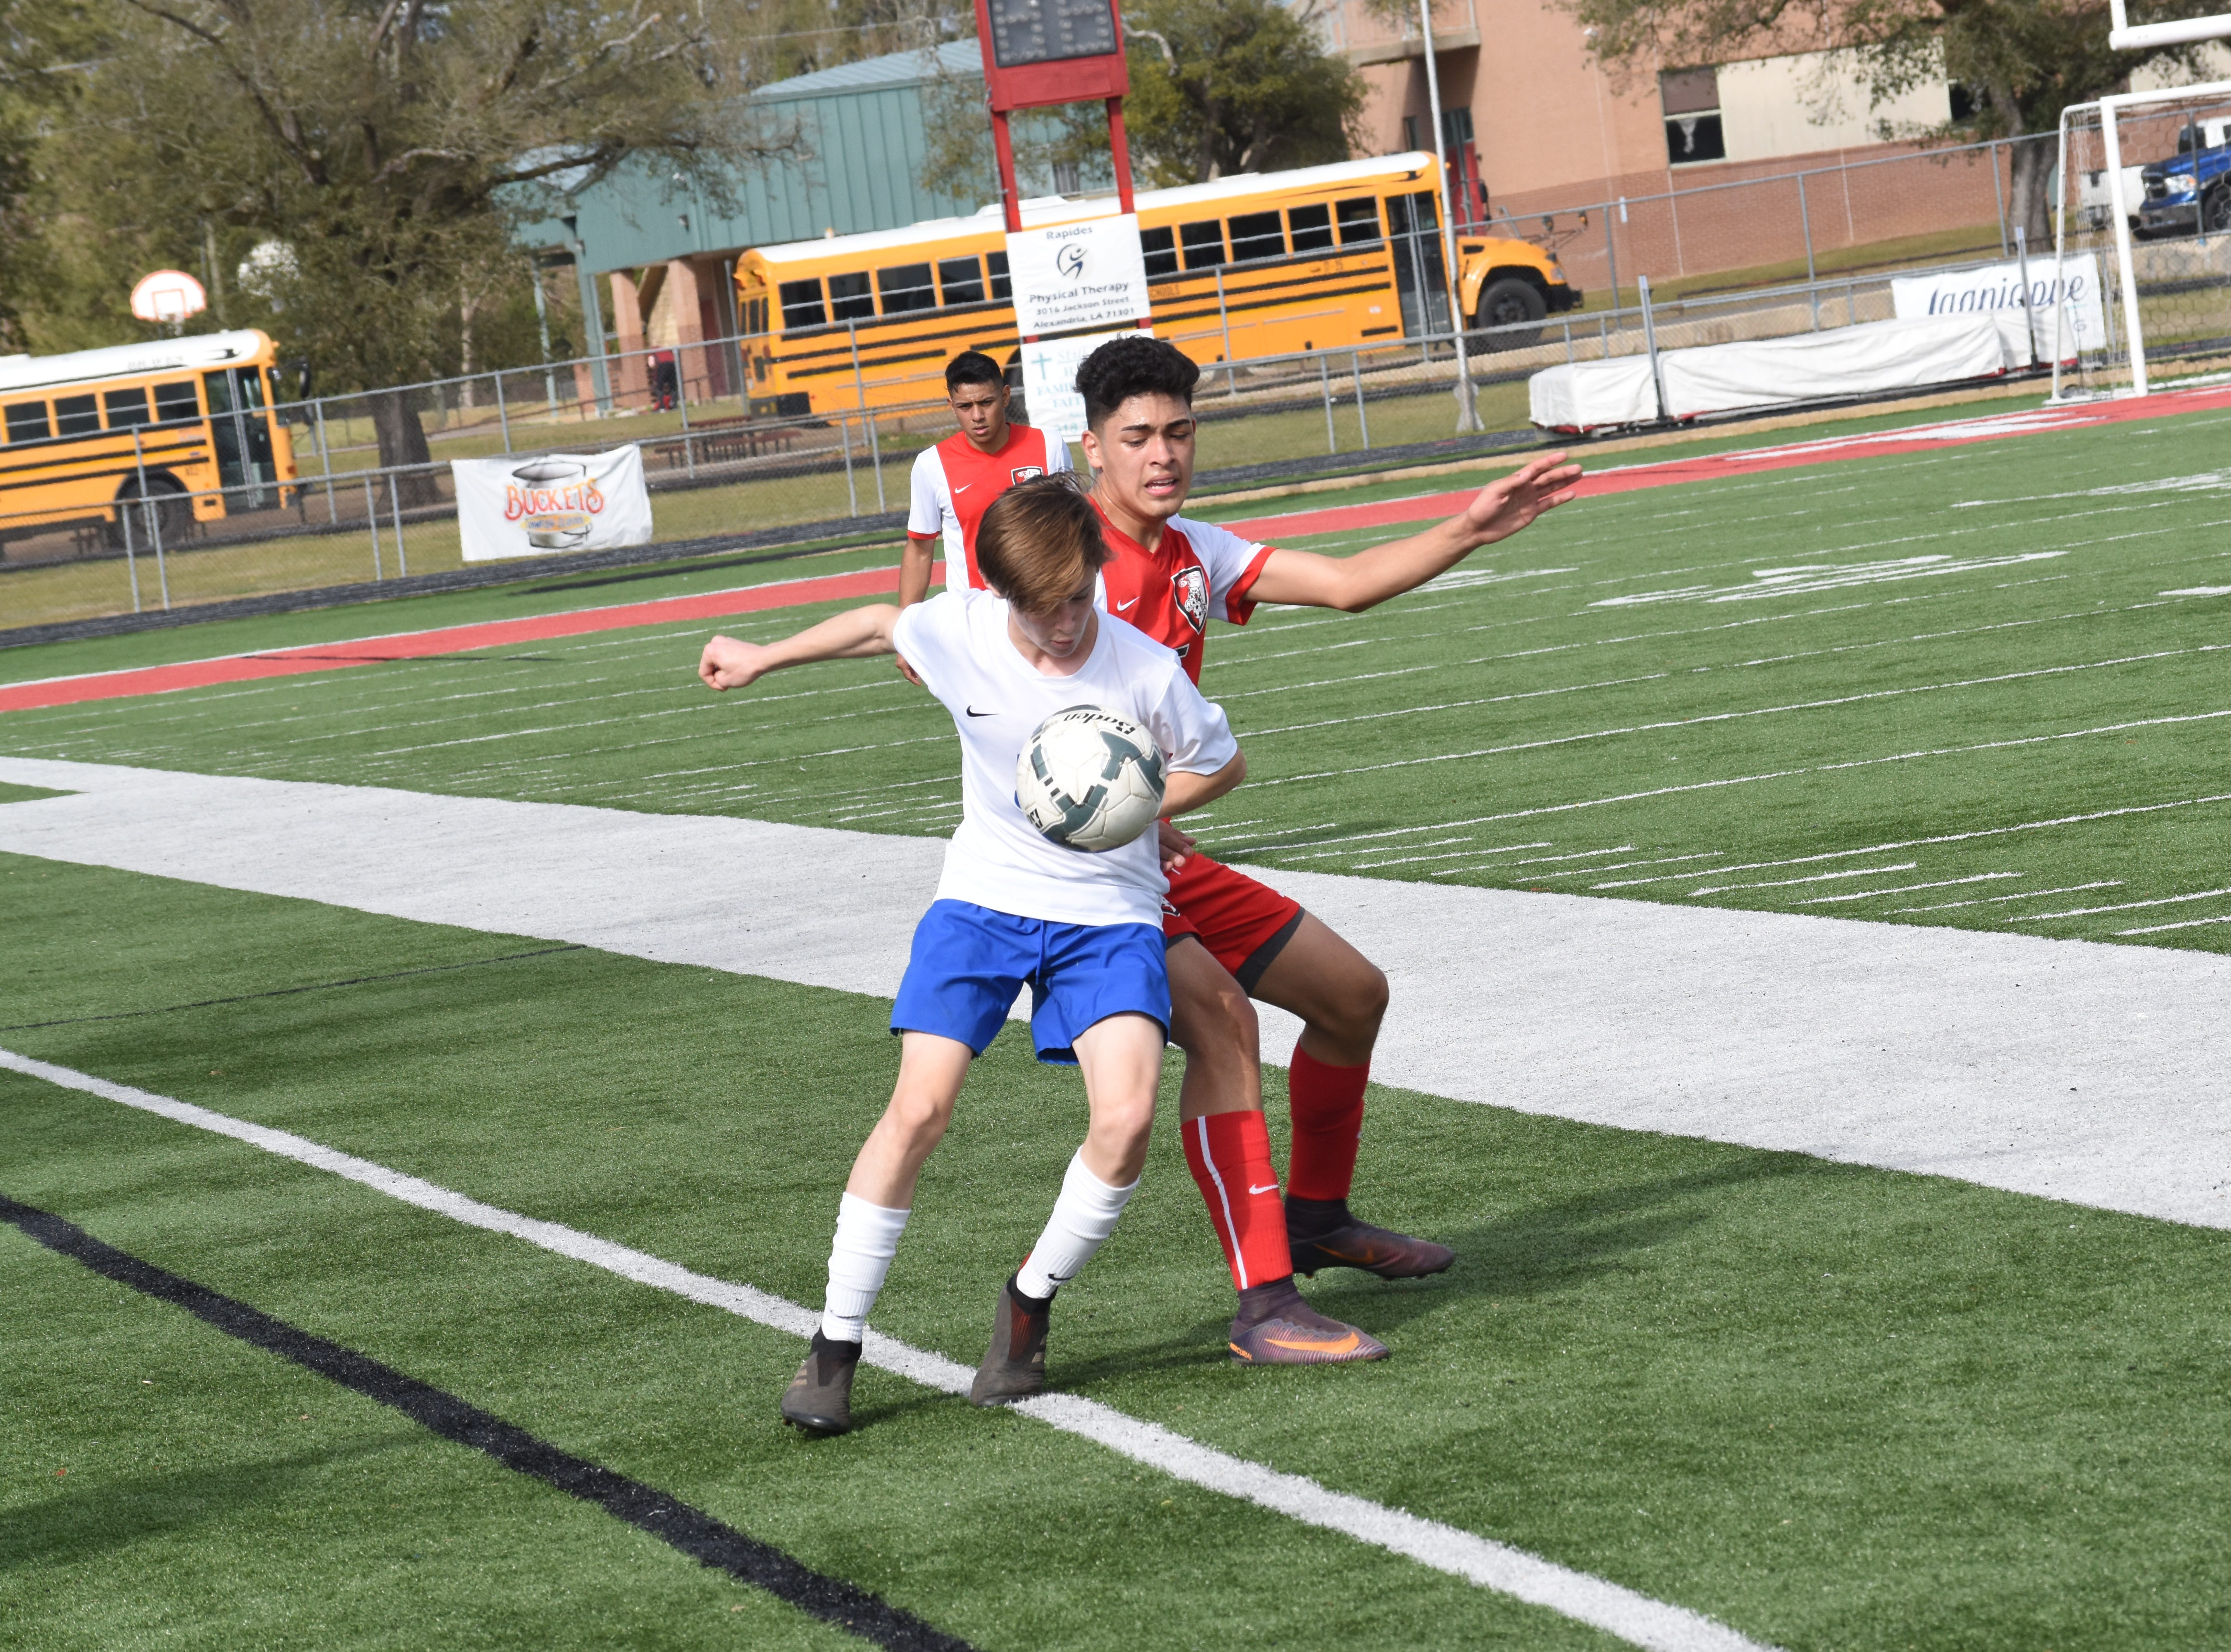 The Glenmora High School boys soccer team played Metarie Country Day School Saturday, Feb. 2, 2019 at Tioga High School in first round of the Division IV playoffs. Metarie Country Day won 3-1.